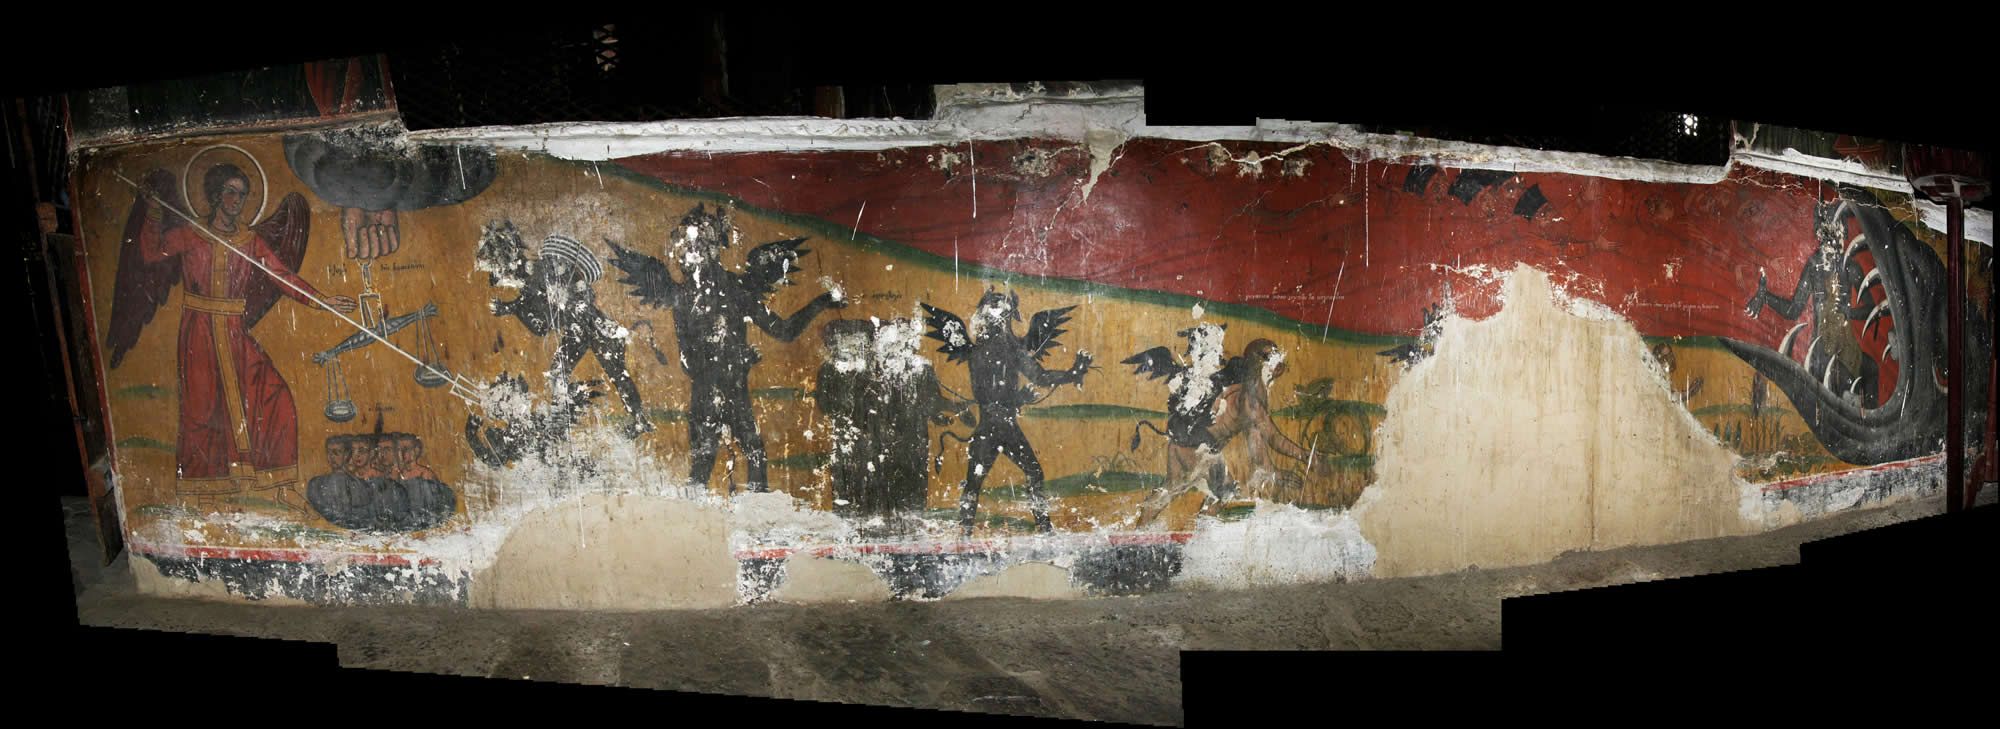 Mural in the gynaeceum (womens quarters): the scale of righteousness ... (the righteous on the left hand side, the sinners on the right hand side) ... the woman that steals zucchini ... the woman that steals cabbage or leeks ... the clergy ... and the Scribes and Pharisees ... all end up in the mouth of the monster of Hades!